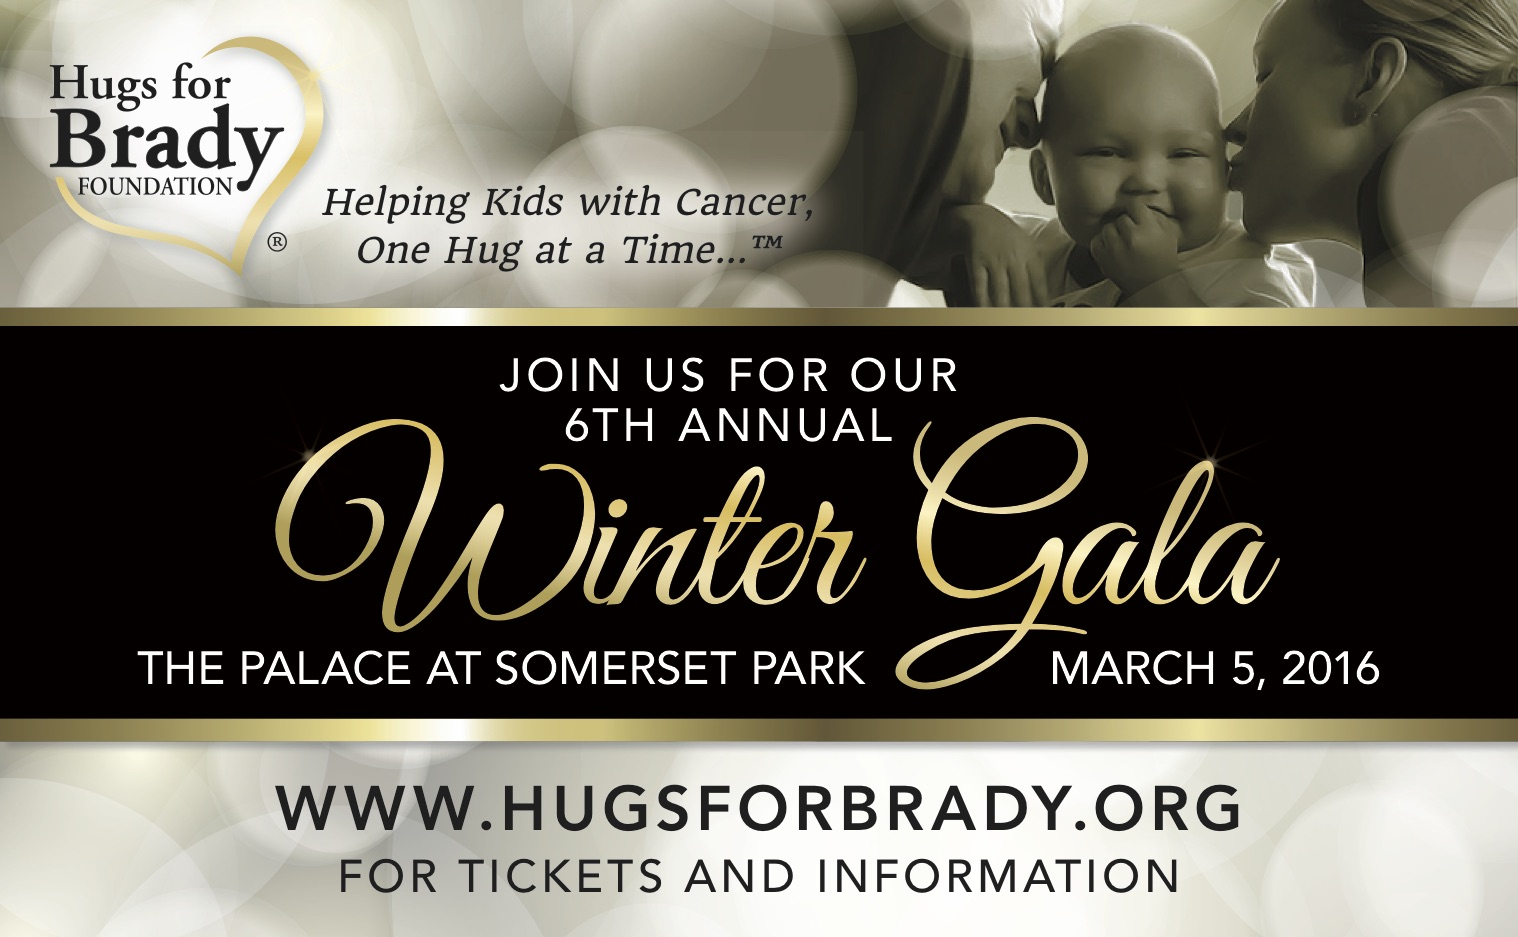 CRAIG SCOTT ORCHESTRA TO ENTERTAIN AT HUGS FOR BRADY FOUNDATION WINTER GALA